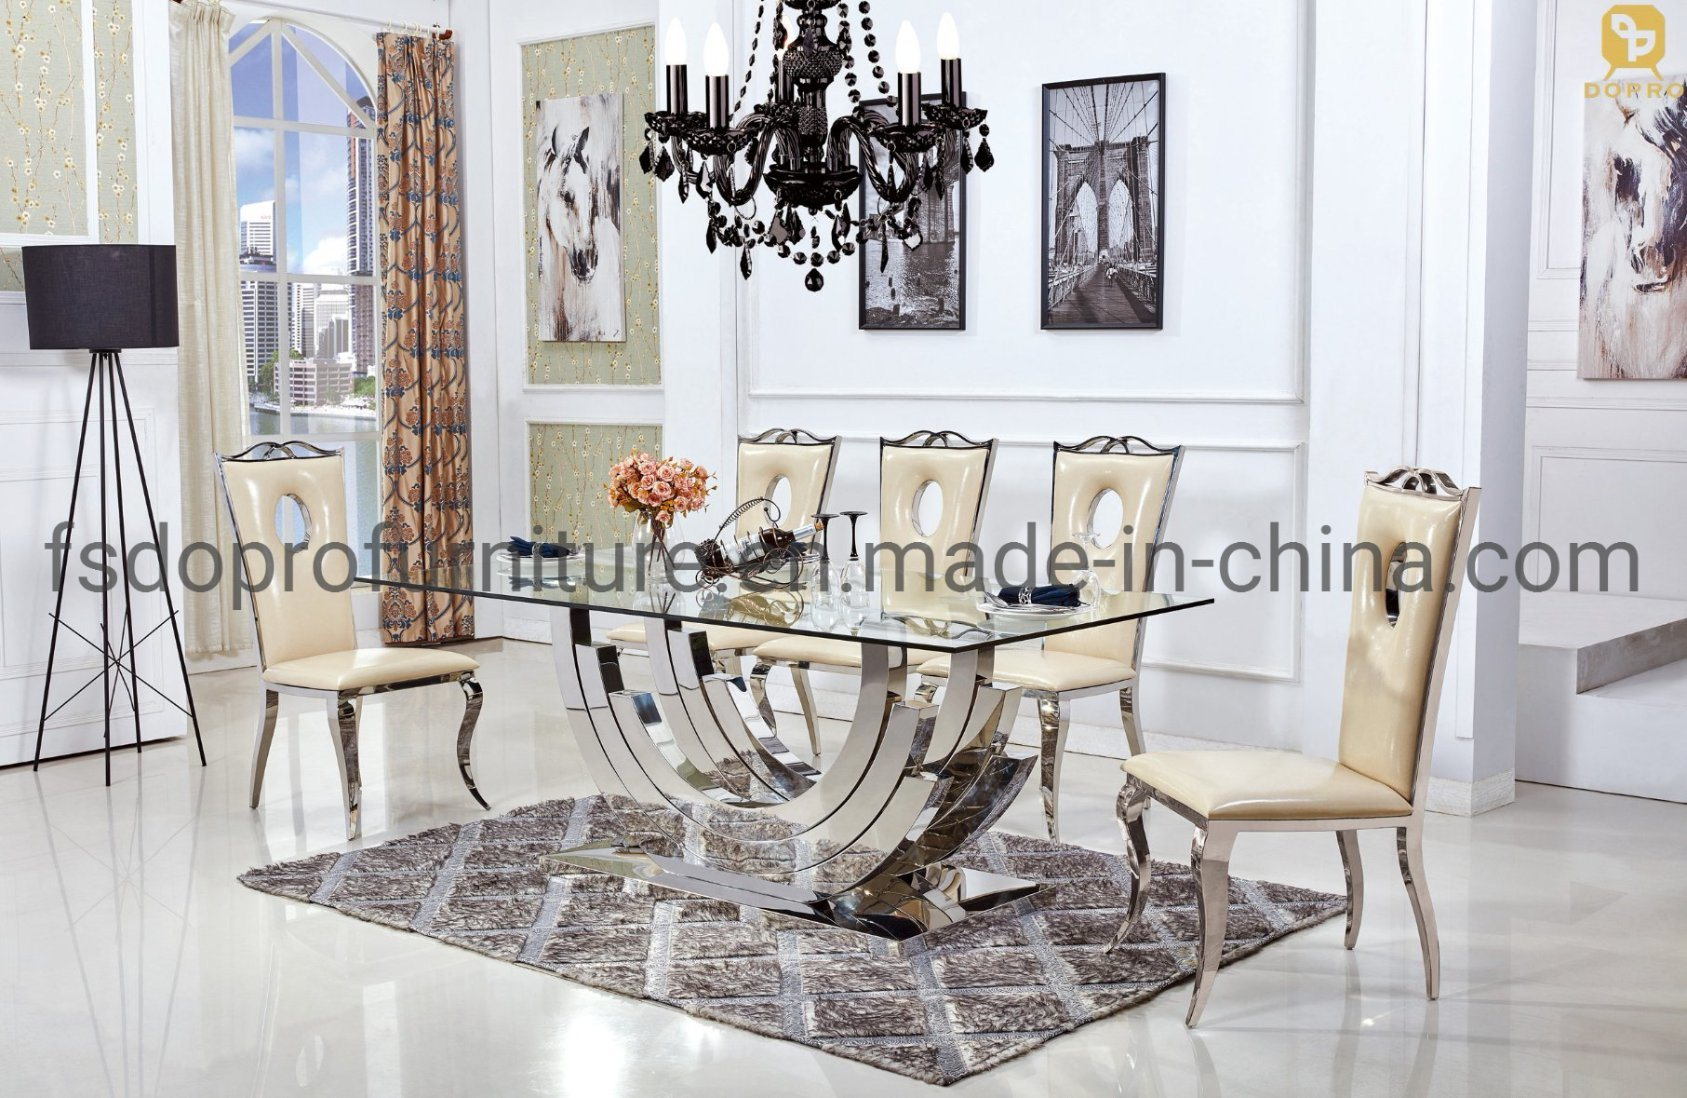 China Glass Top Dining Table Set 8 Seater Living Room Furniture Hotel Use D26 China Dining Table Glass Table